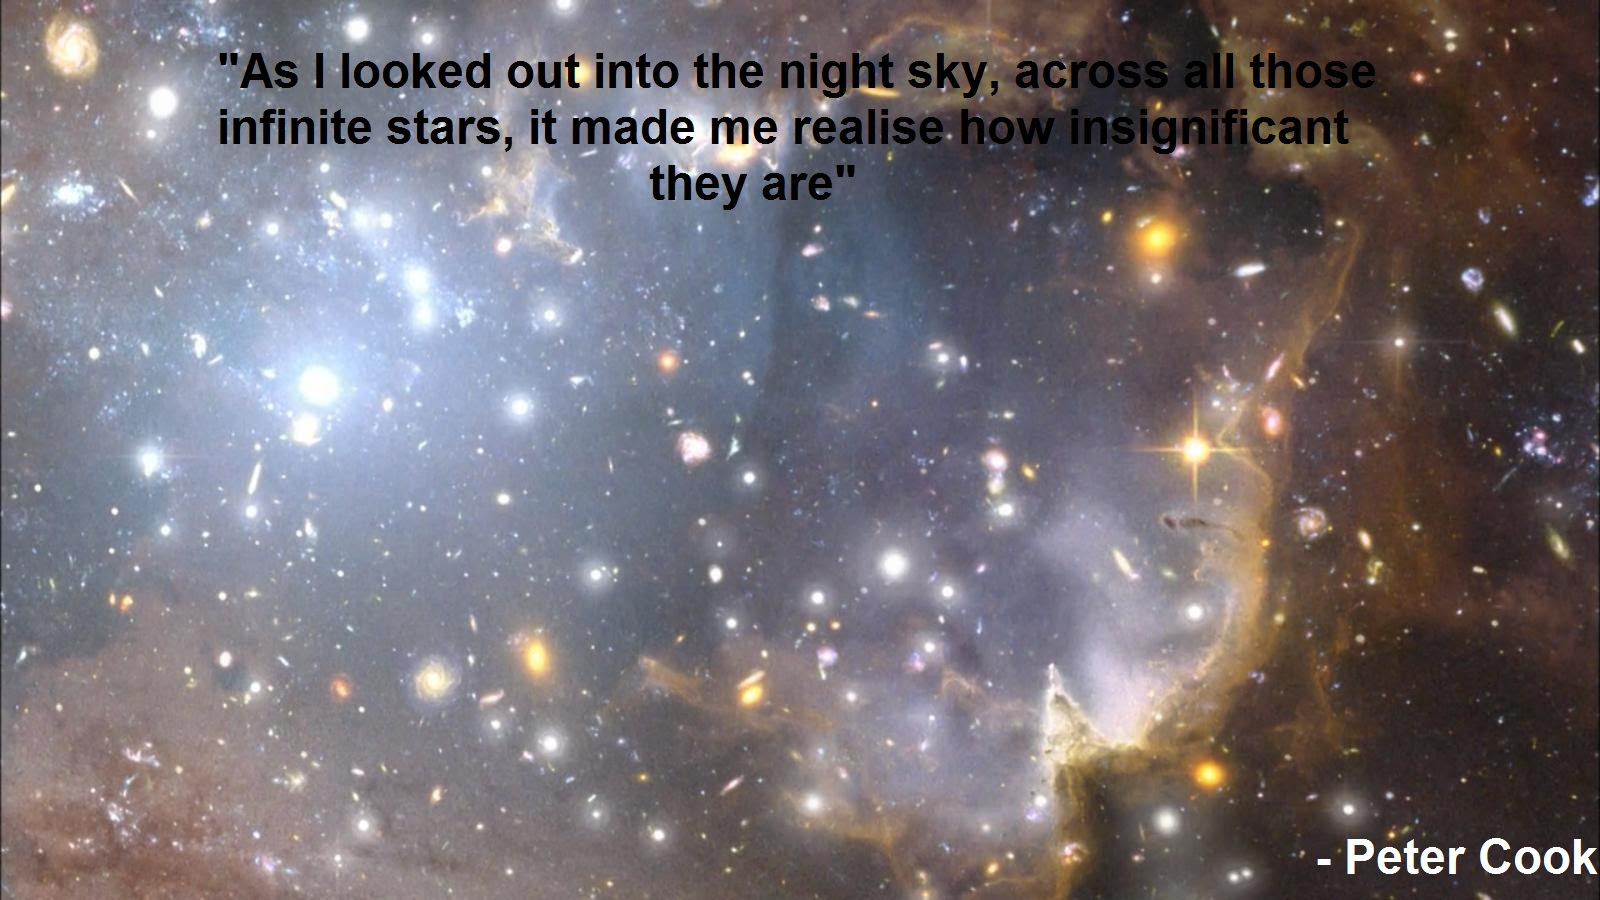 As I Looked Out Into The Night Sky Peter Cook 1600x900